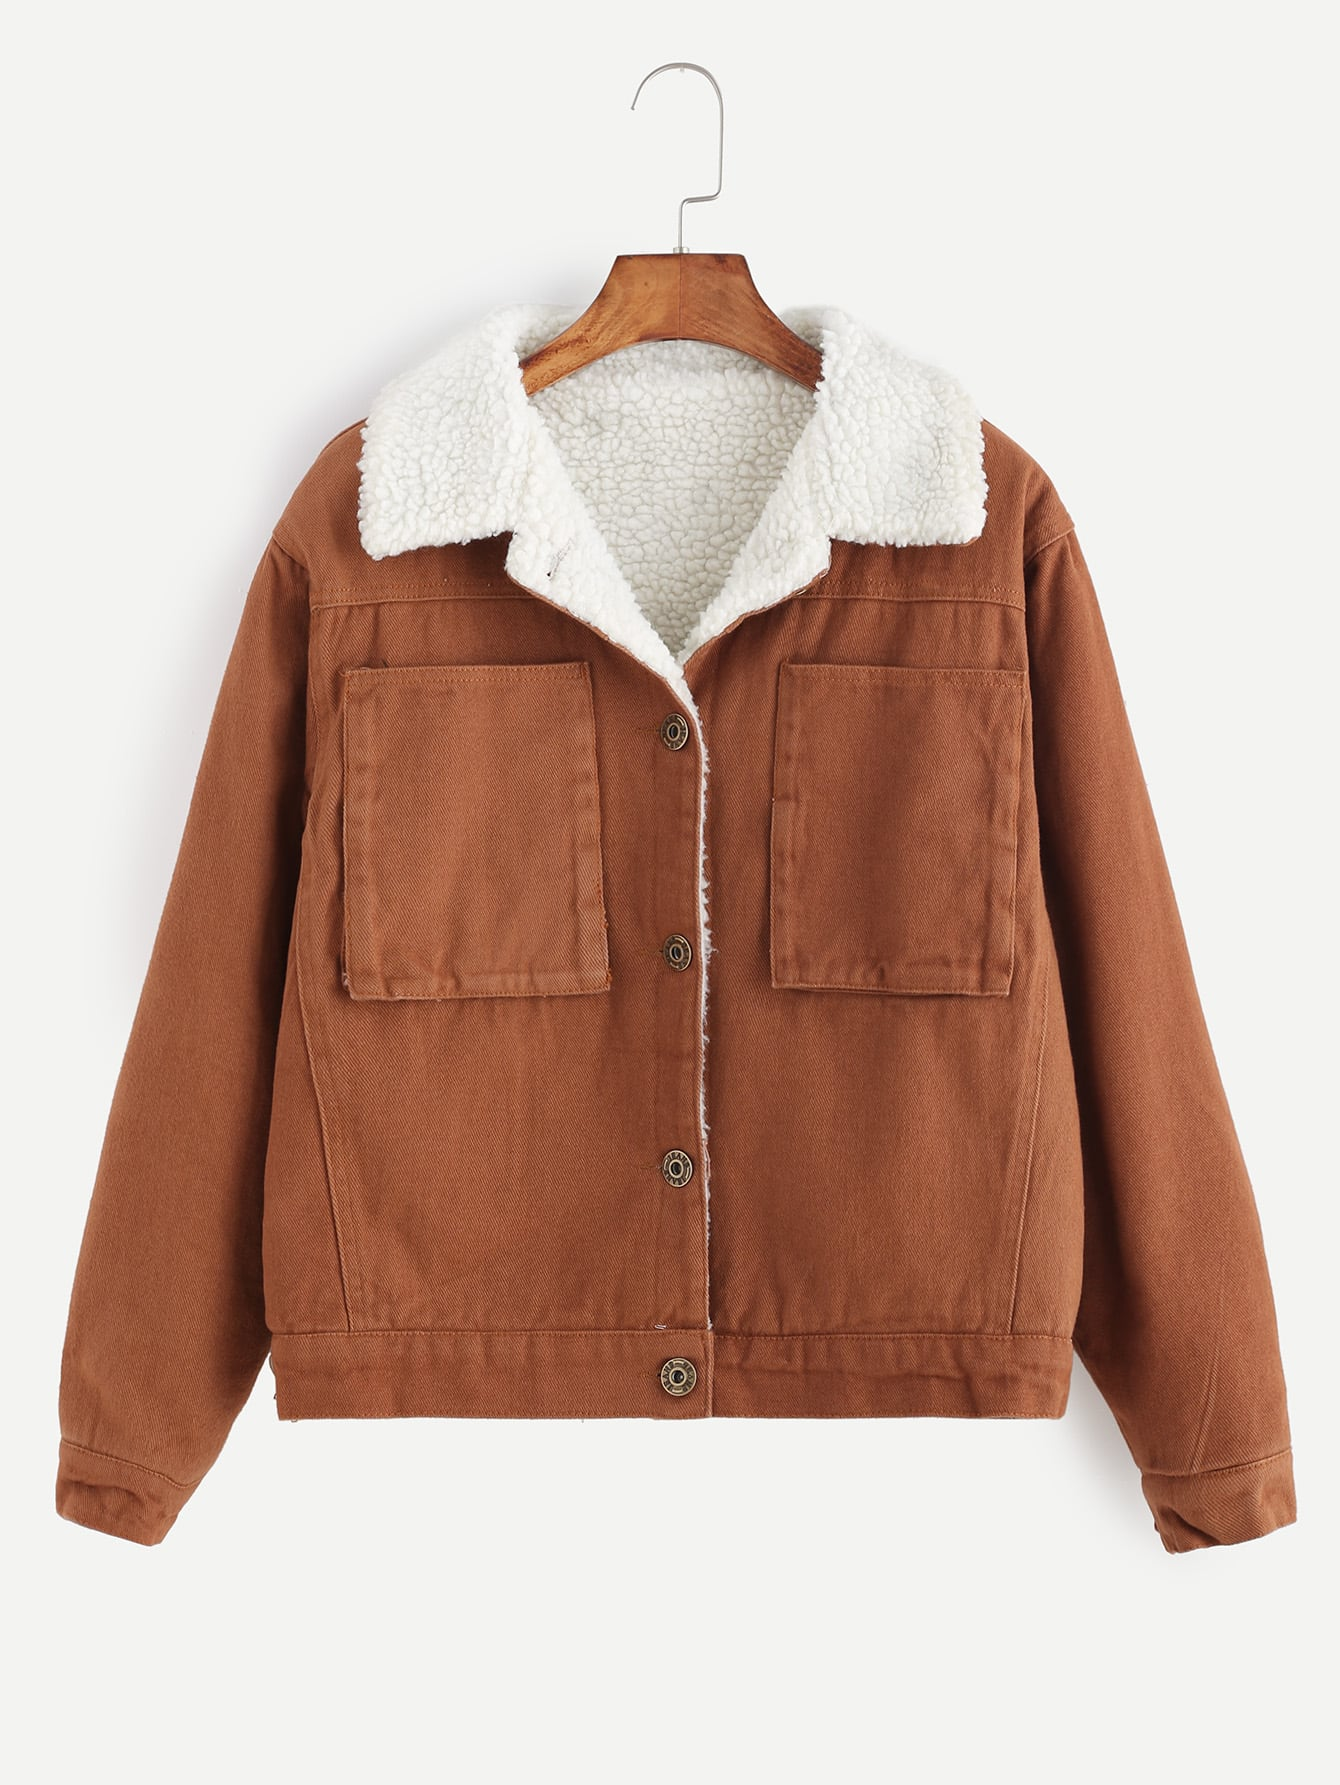 Brown Polyester School Collared Single Breasted Fall Winter Plain Fabric has no stretch Yes Regular Fit Button Pocket Jackets.